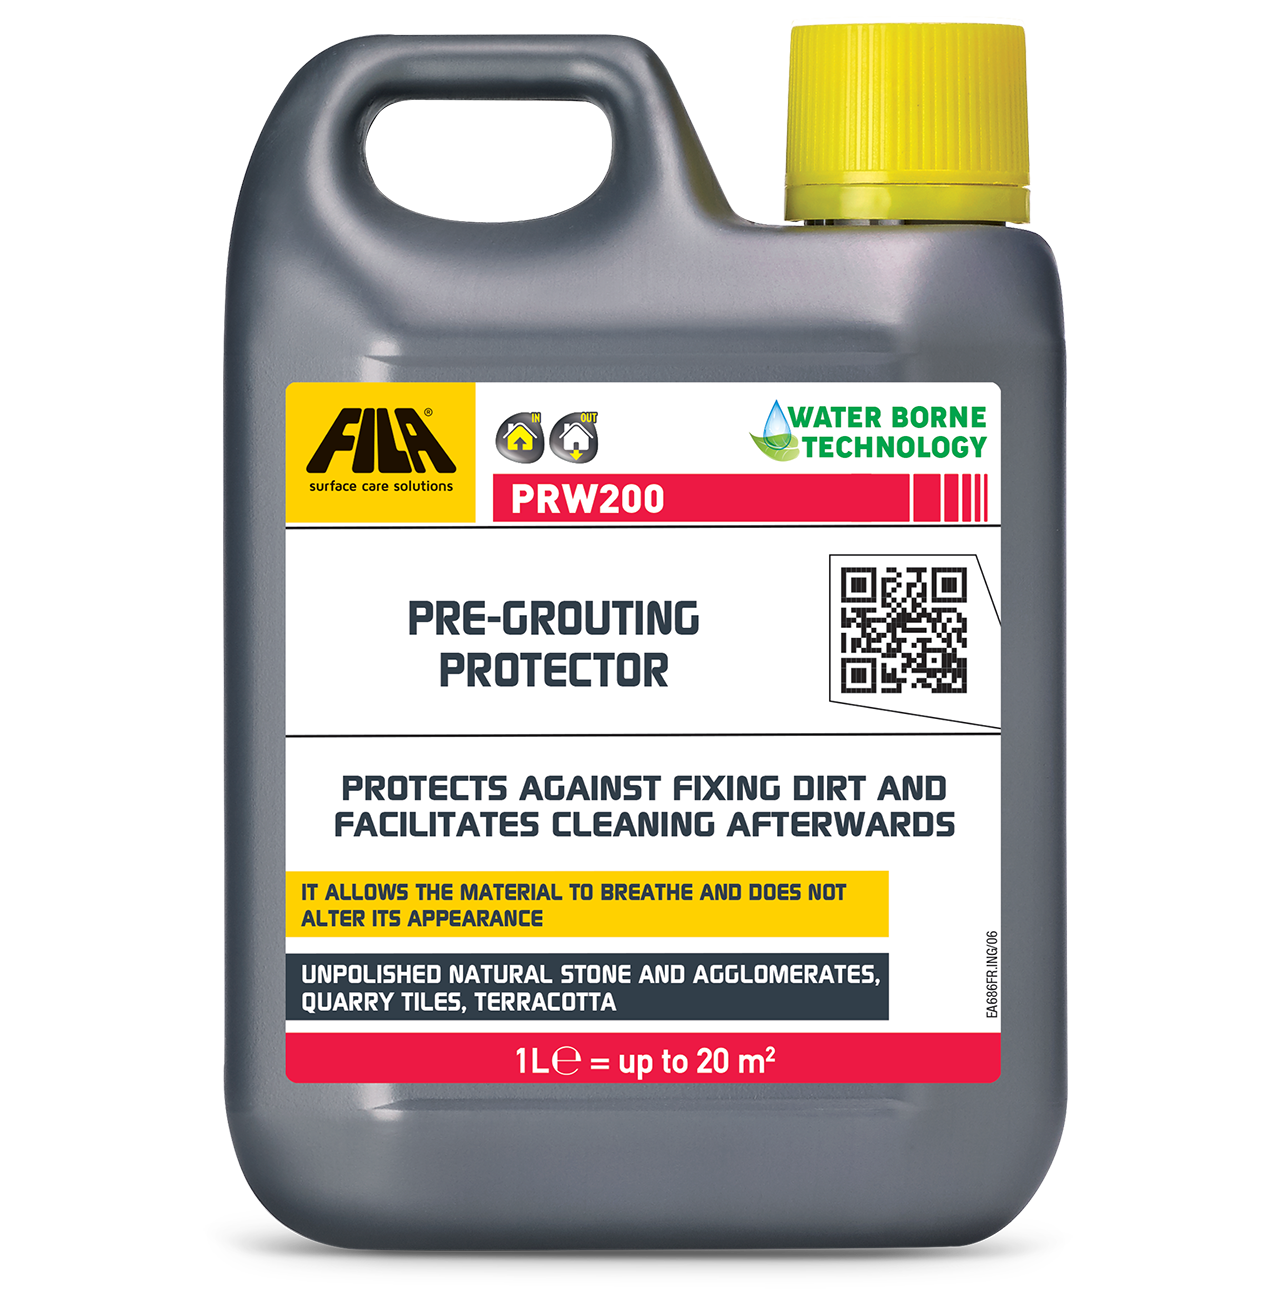 Thumbnail PRW200 - Pre-grouting protector